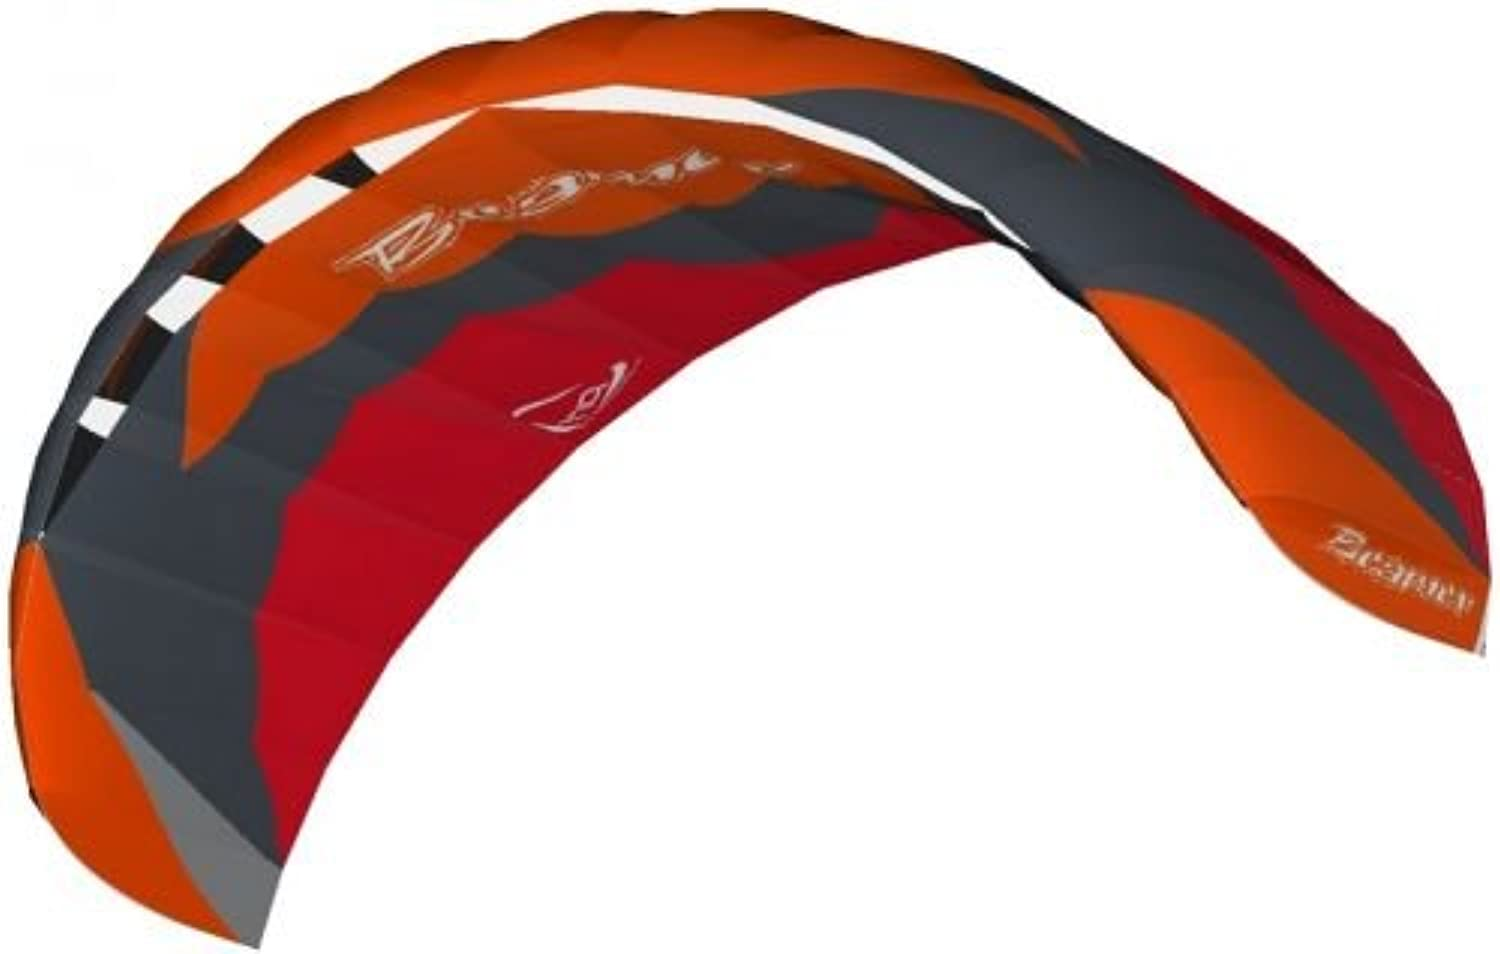 HQ Ready to Fly 4 Metre Beamer V Kite  Red